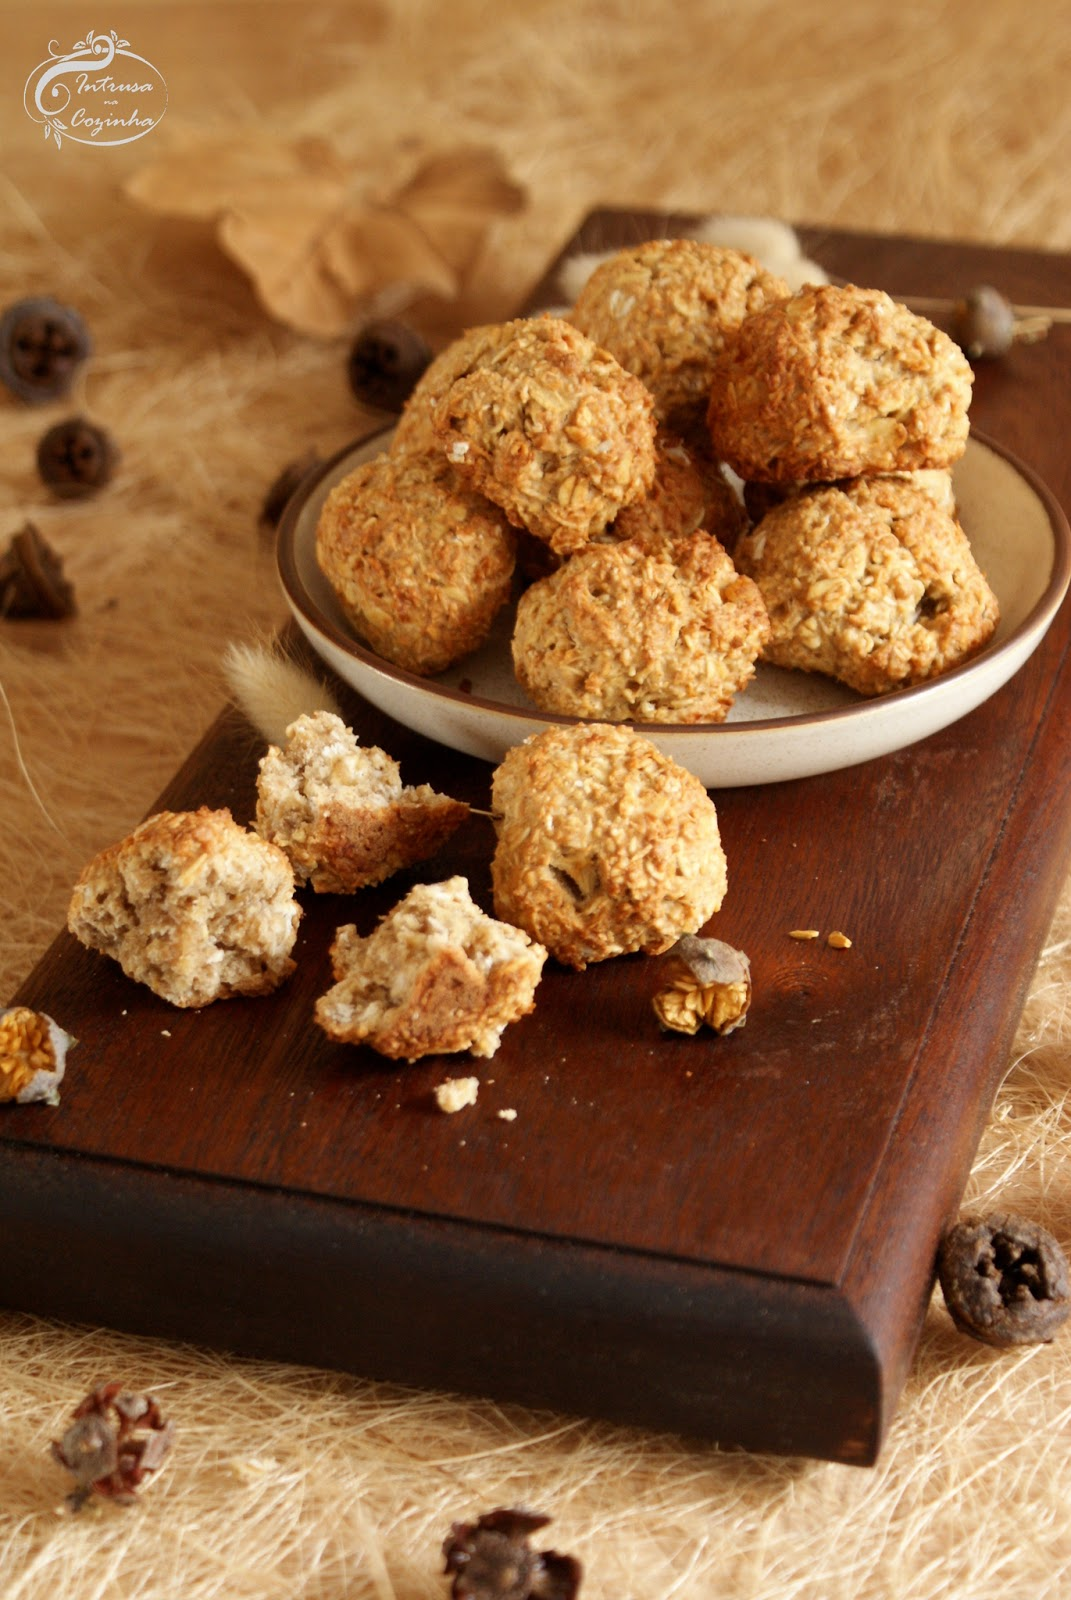 Bolinhos de Coco, Maçã e Aveia {Coconut, Apple and Oatmeal Cookies}